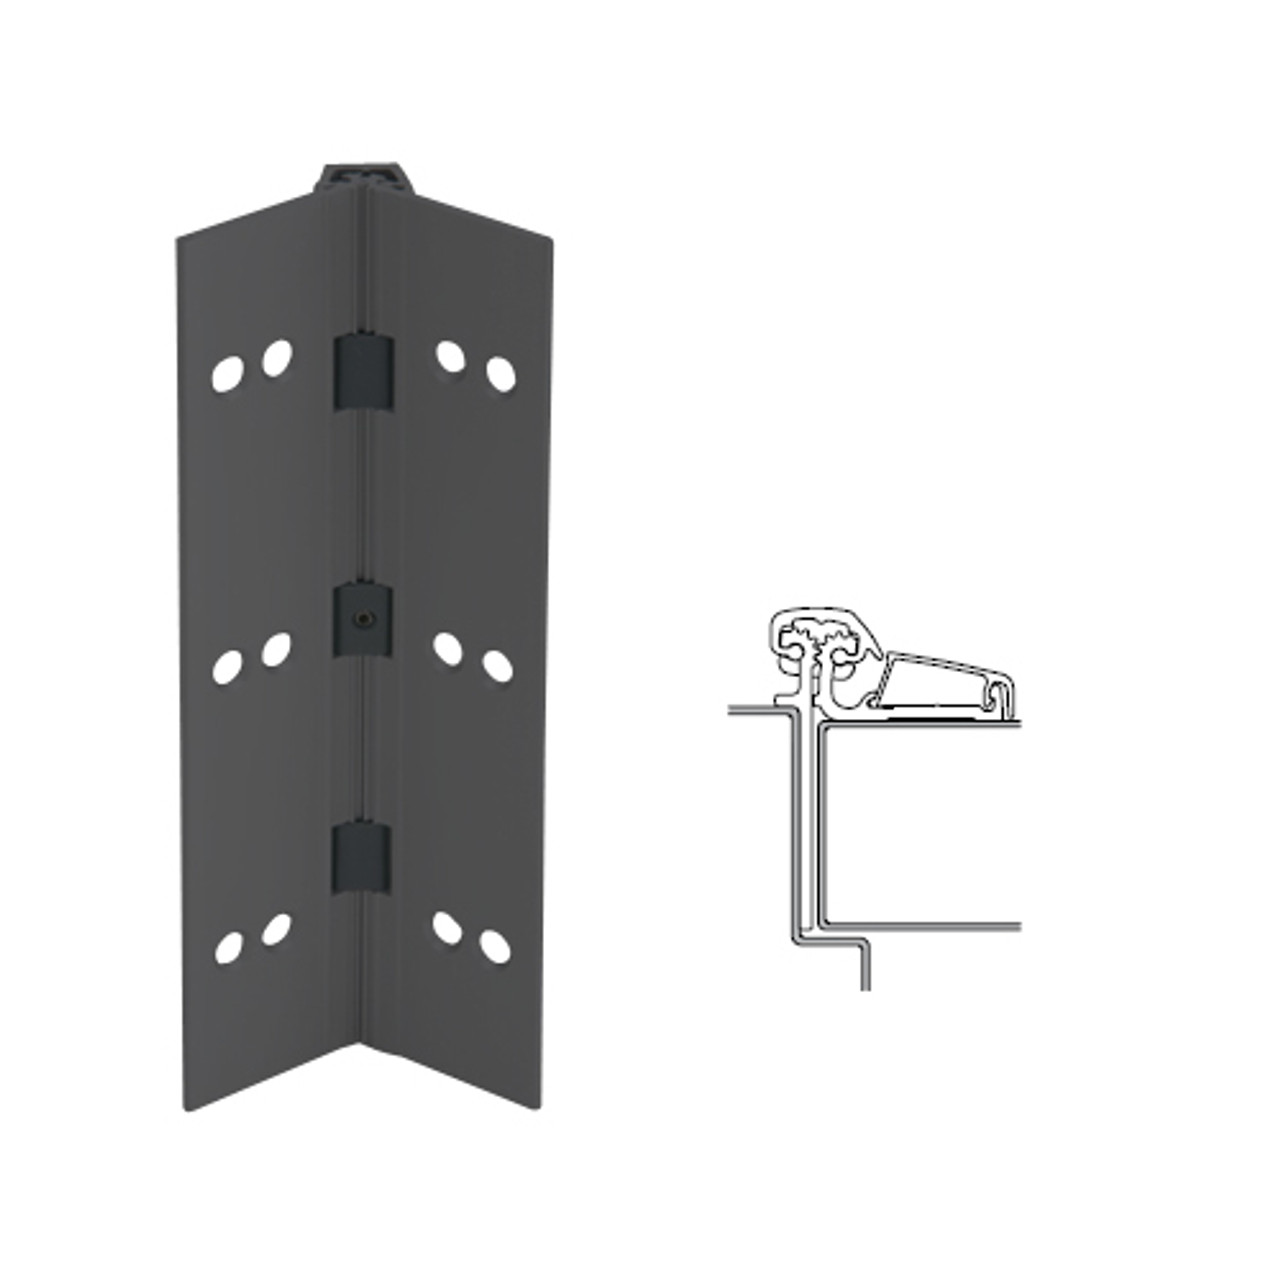 054XY-315AN-83-TF IVES Adjustable Half Surface Continuous Geared Hinges with Thread Forming Screws in Anodized Black